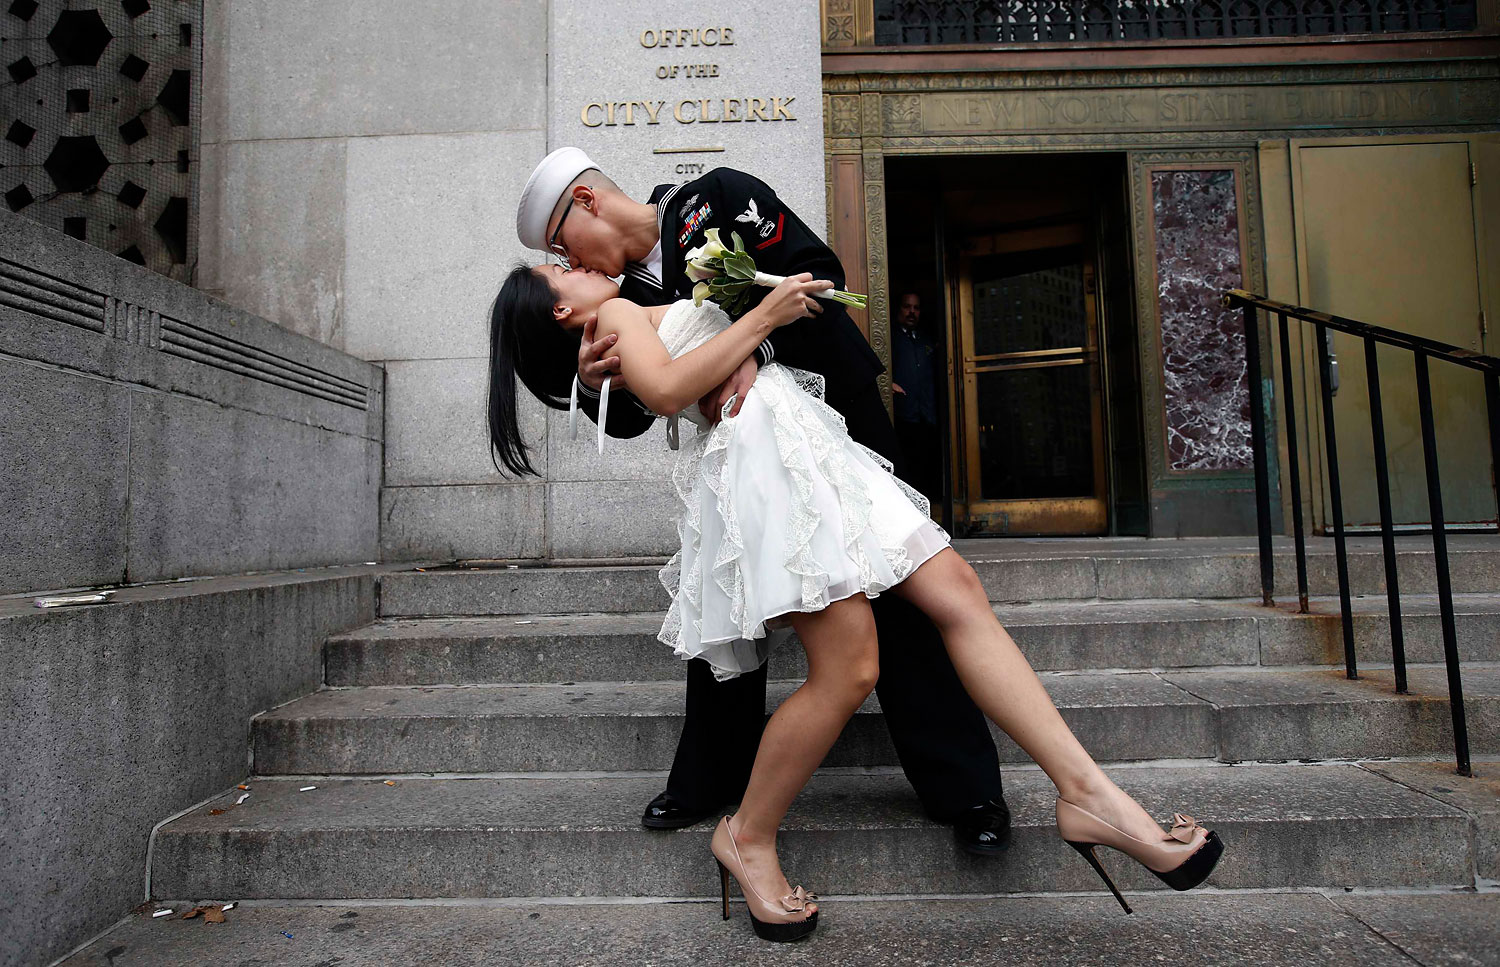 image: U.S. Navy Petty Officer John Chen, 23, of Lakehurst, N.J., kisses his wife Victoria Chan, 25, from Manhattan, after being married in New York City.